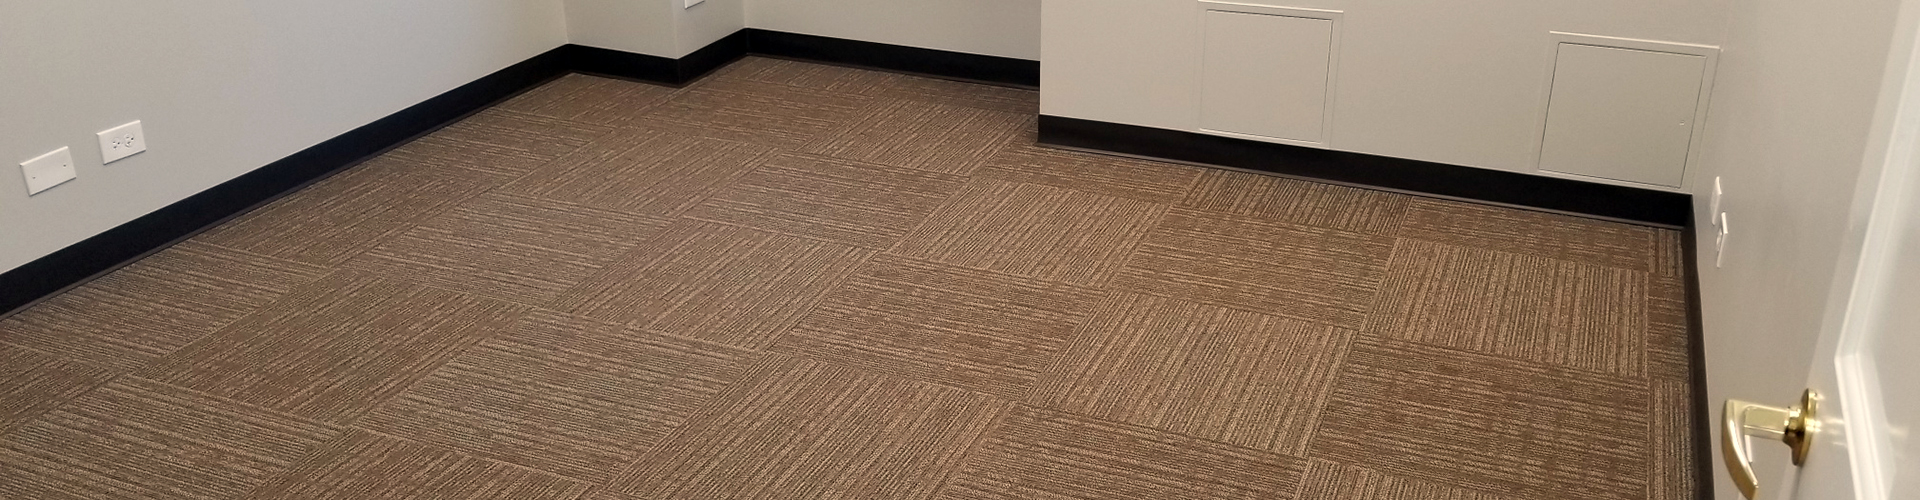 Local Carpeting, Wood and Tile Flooring Contractor